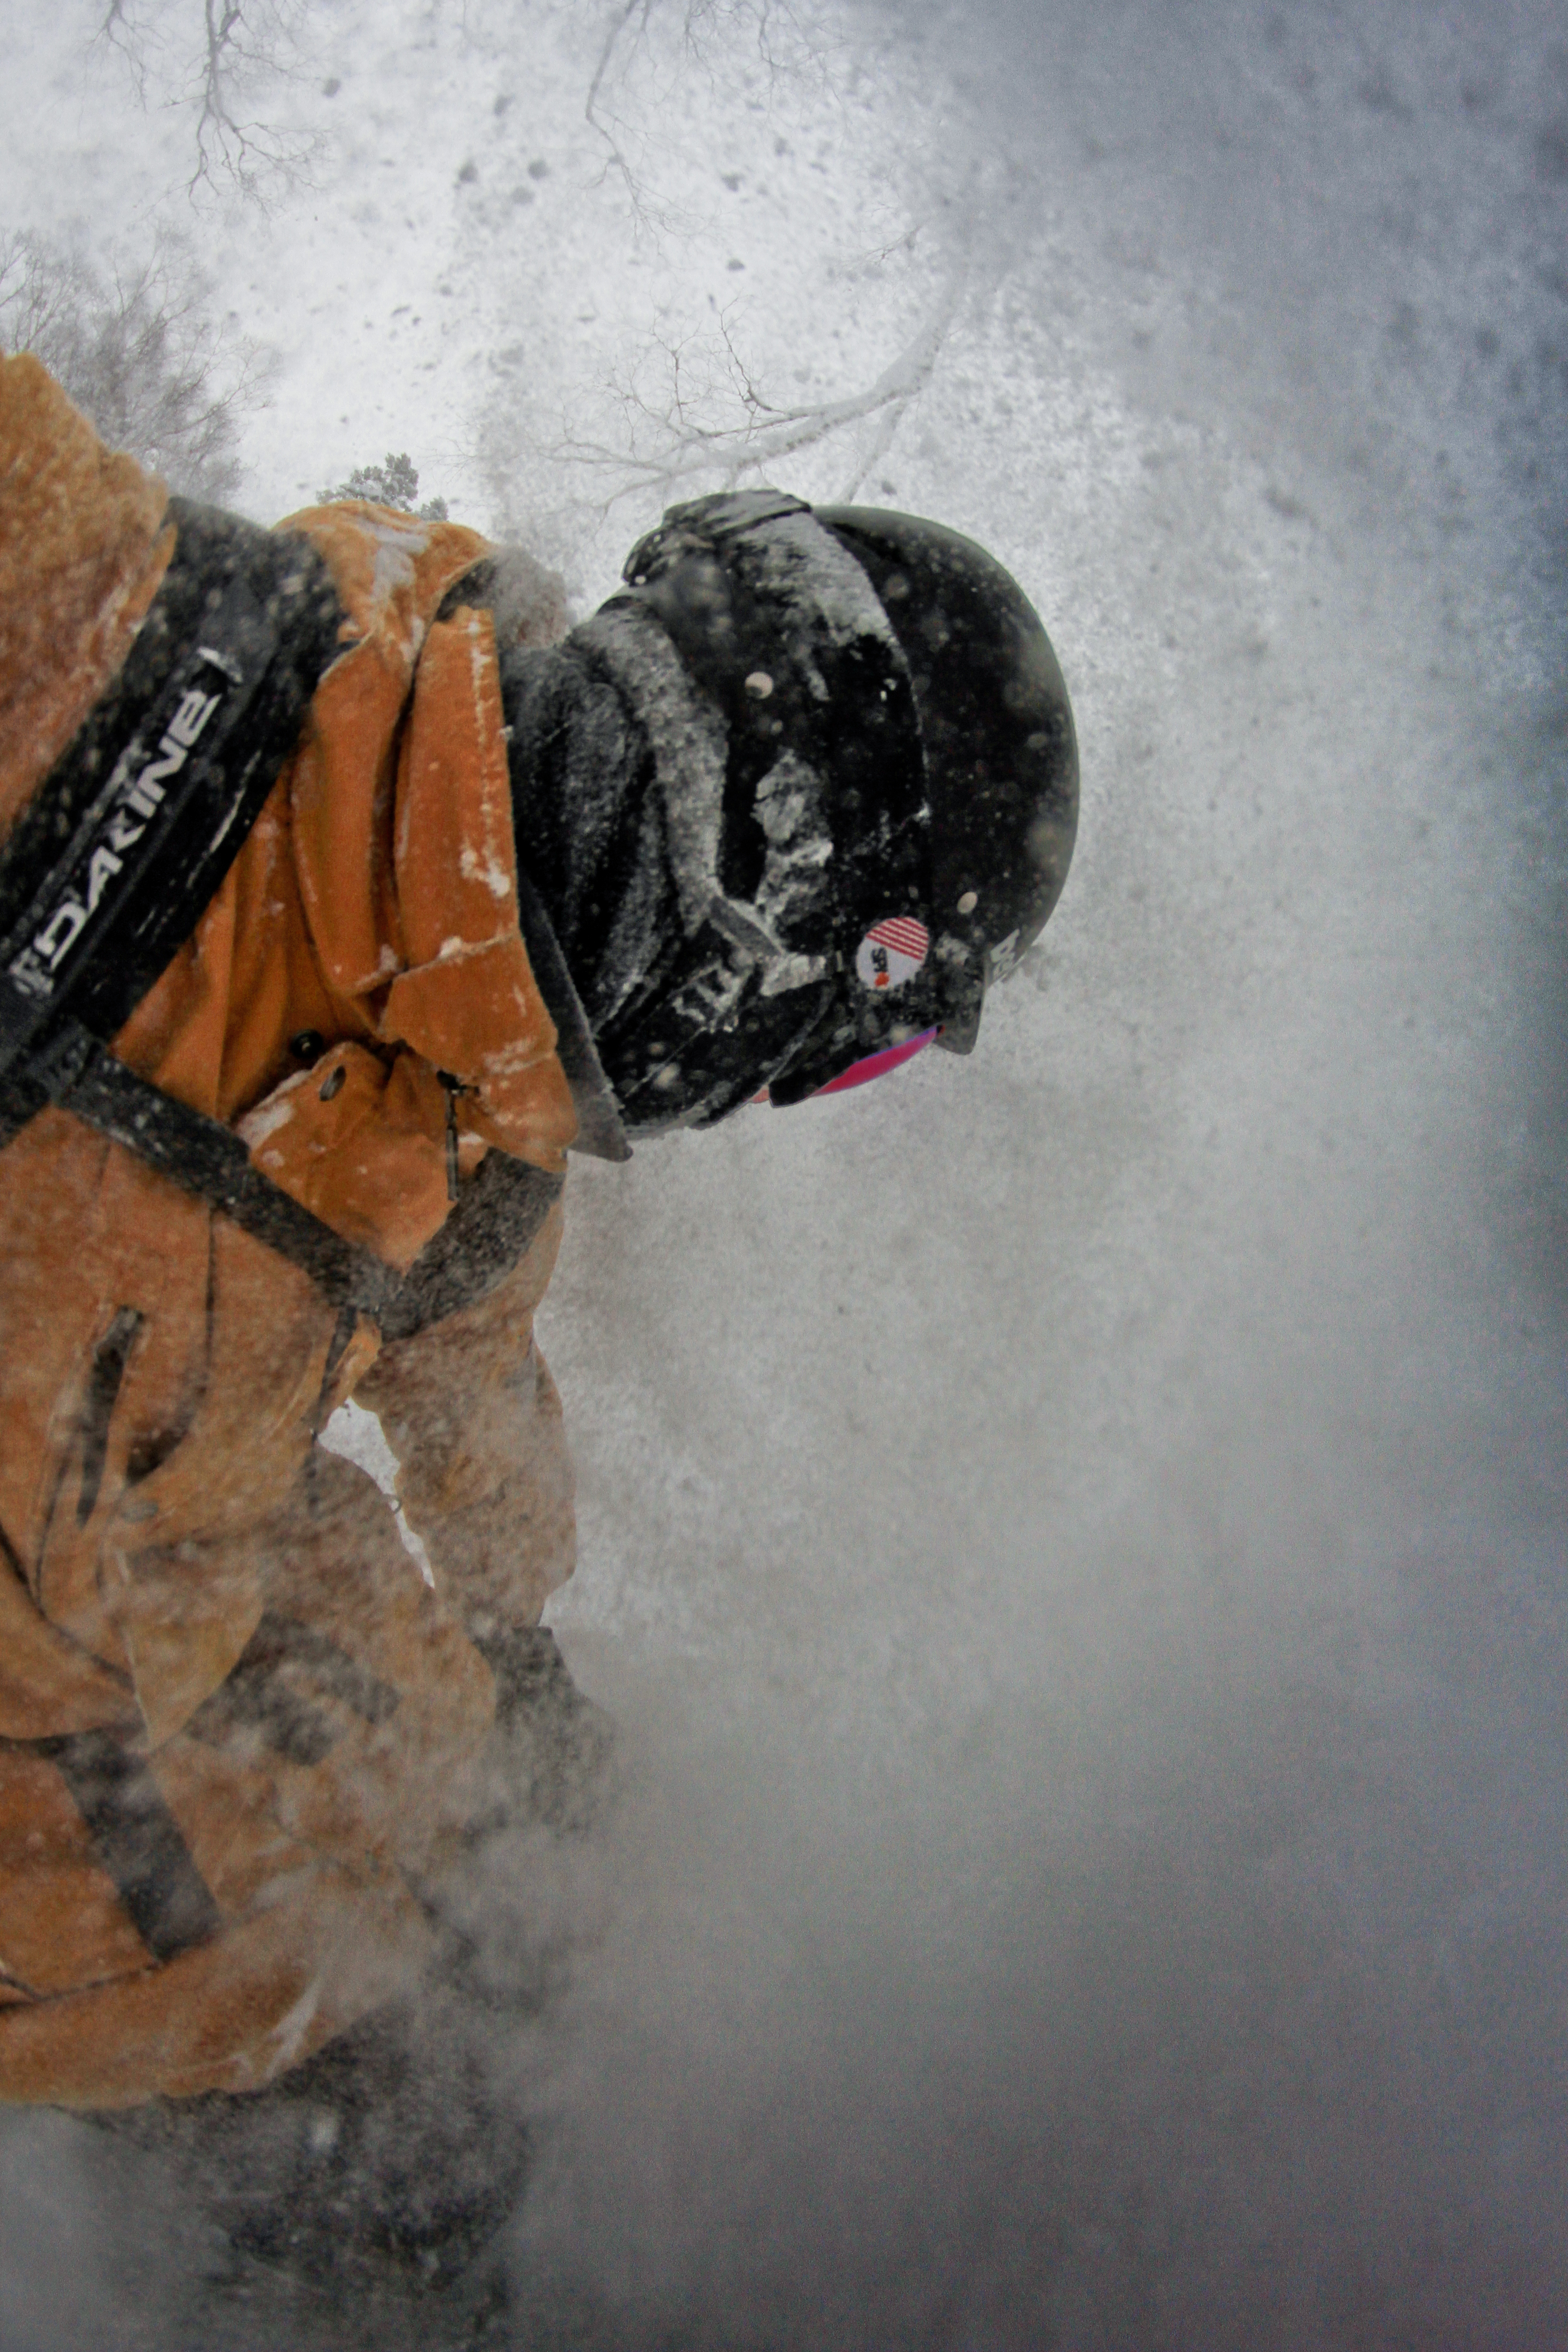 Inside the white-room with the Freeride snowboard school Independent in Verbier